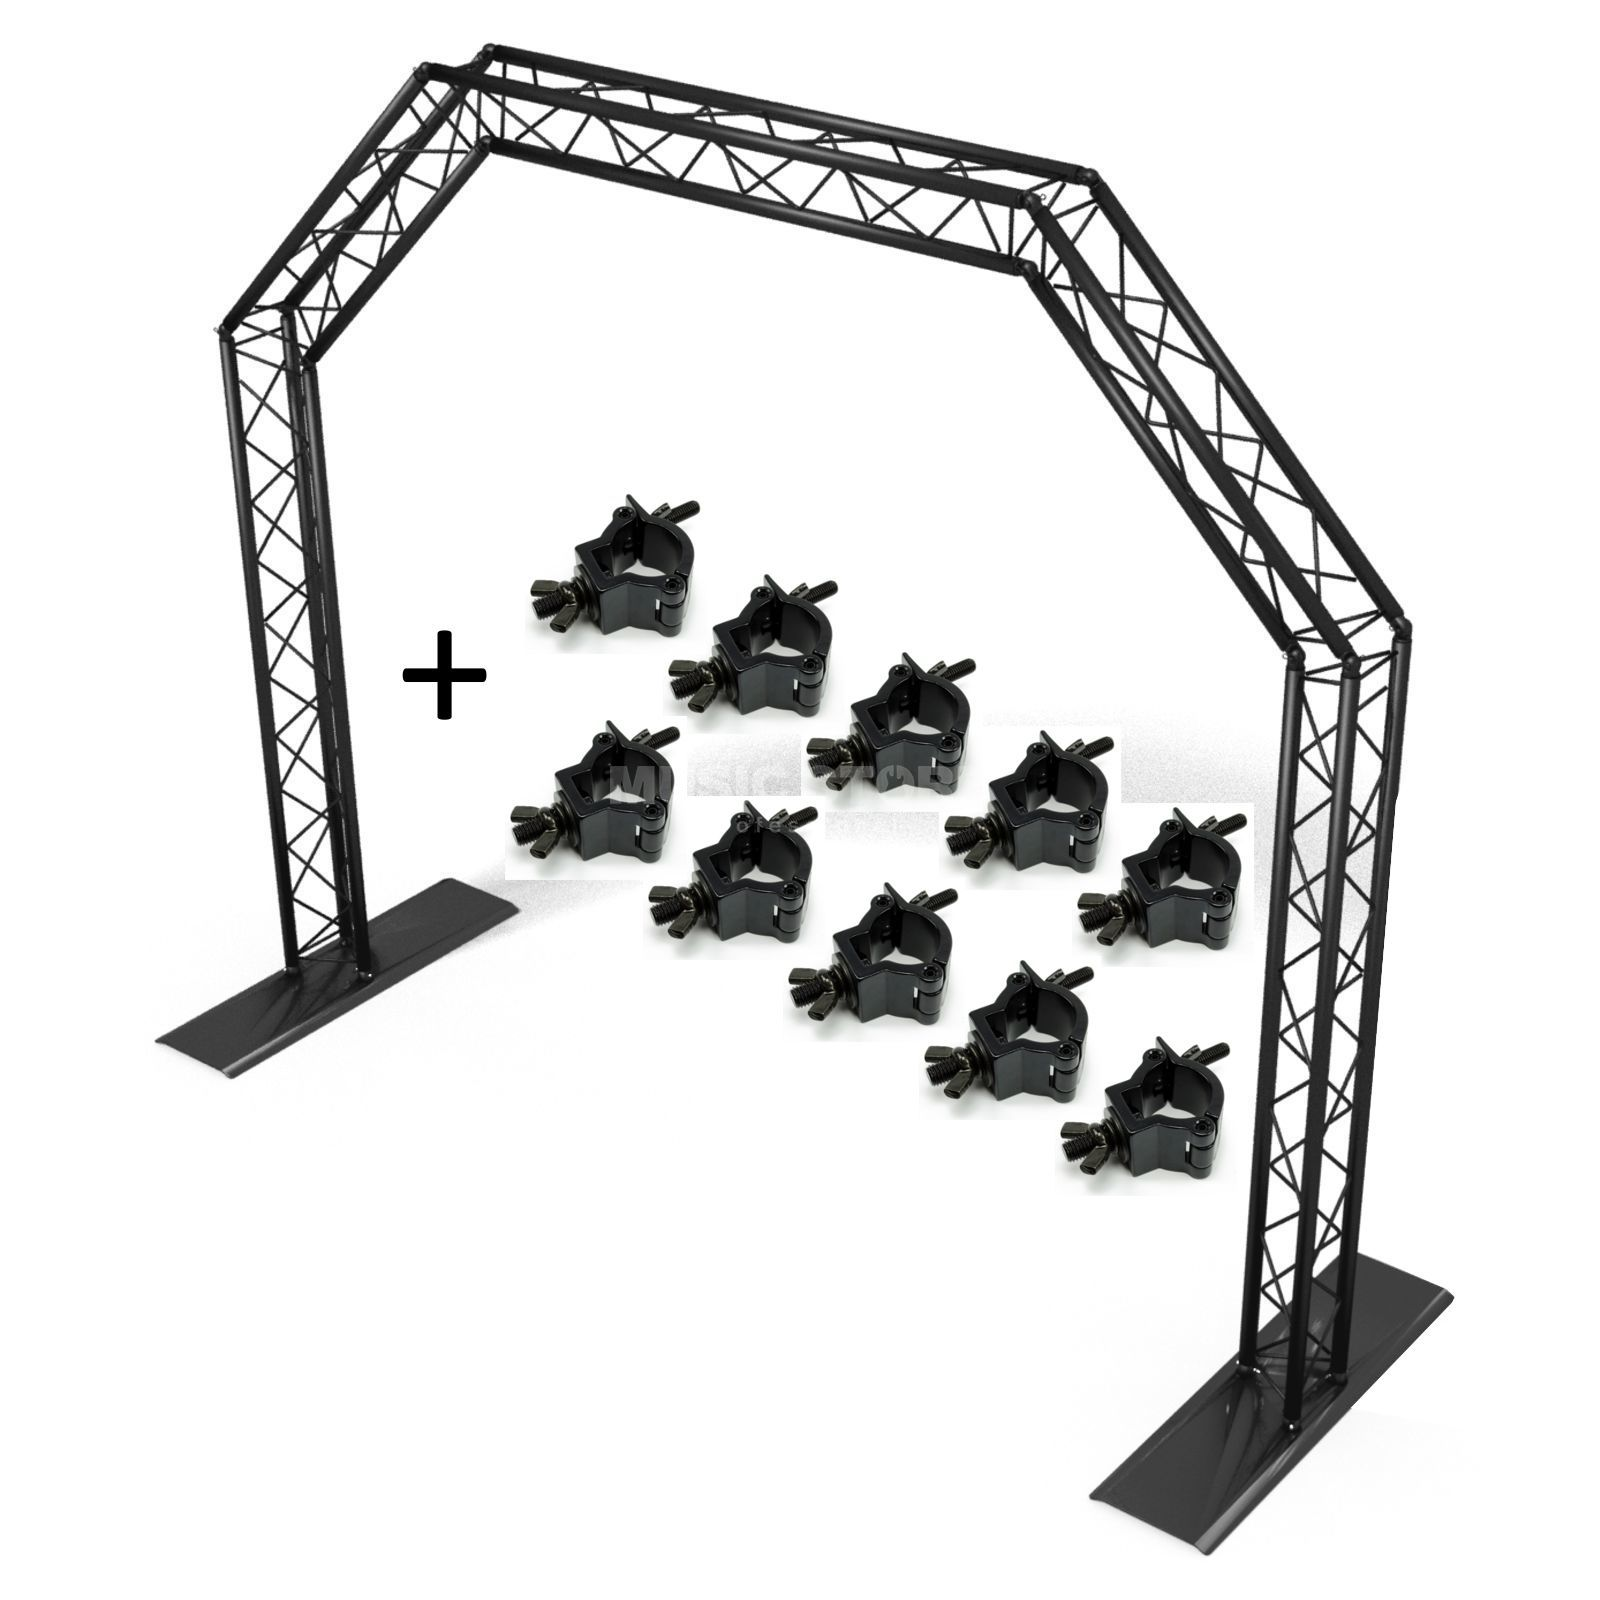 LightmaXX MOBILE DJ TRUSS GATE - Set Produktbillede